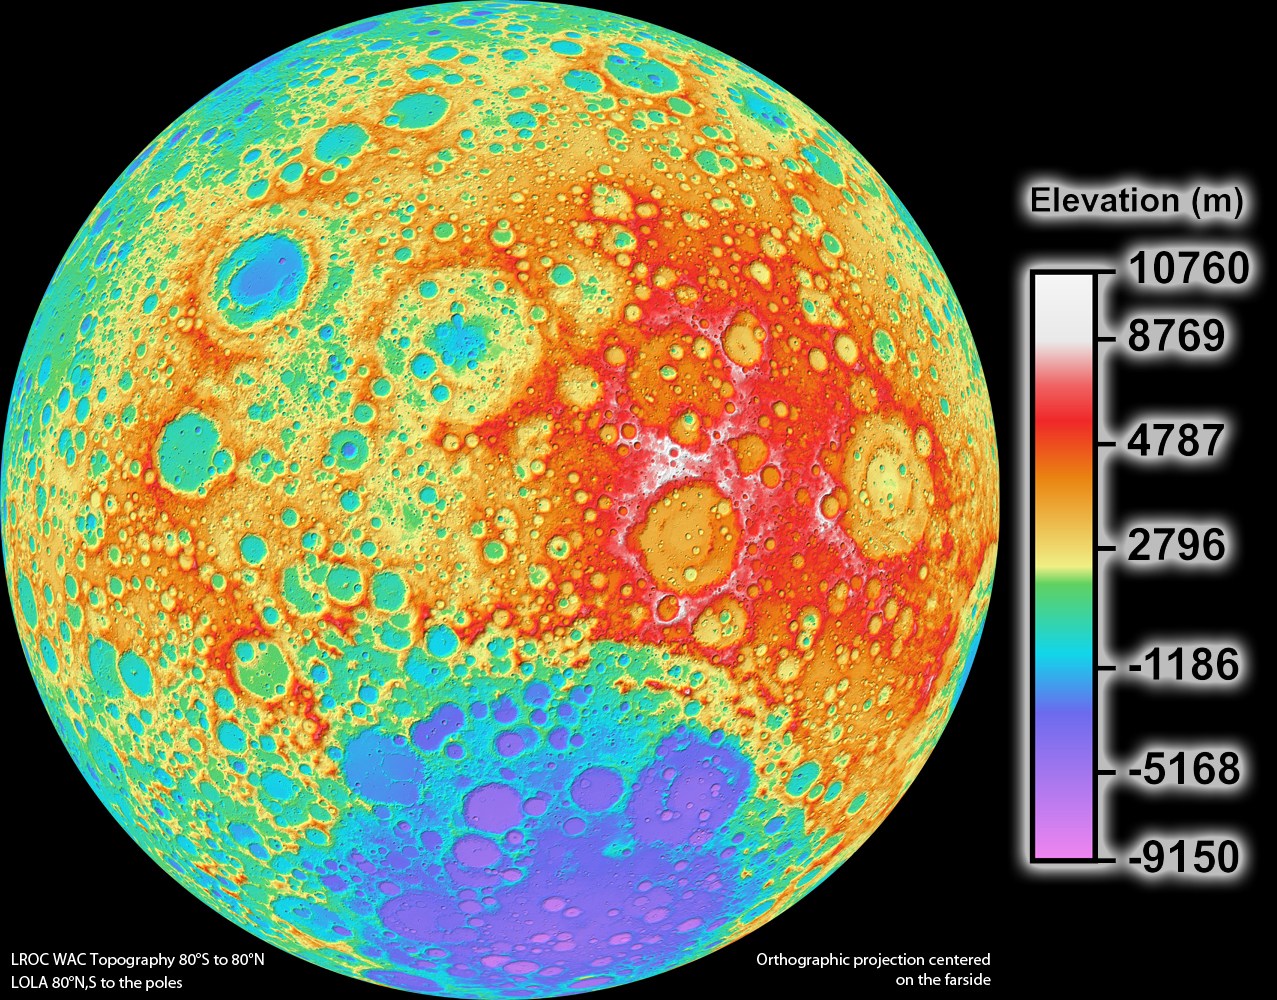 A New Map of the Moon